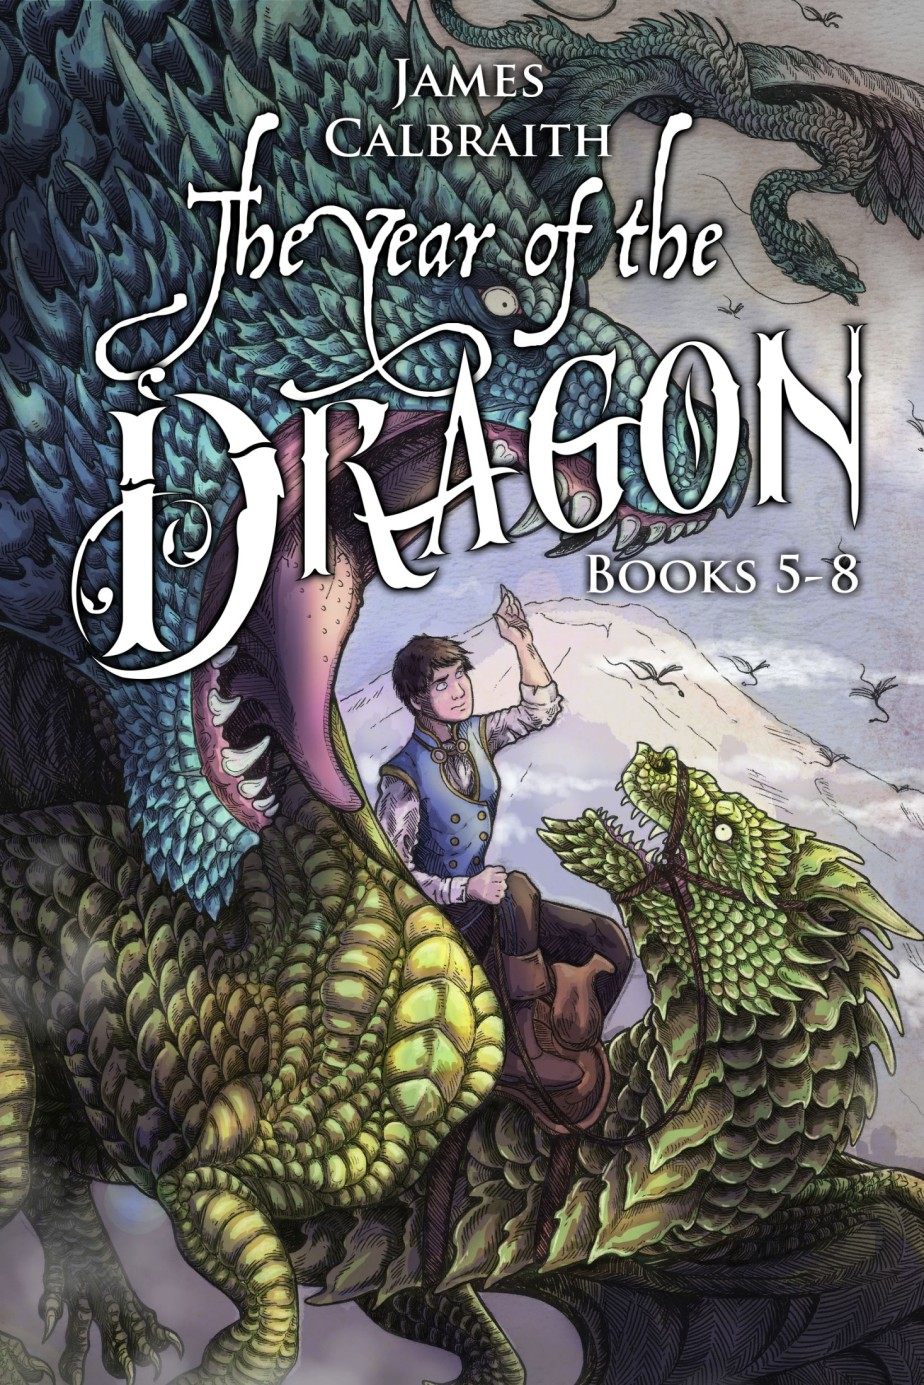 The Year of the Dragon: Second Bundle (vols. 5-8) Release!